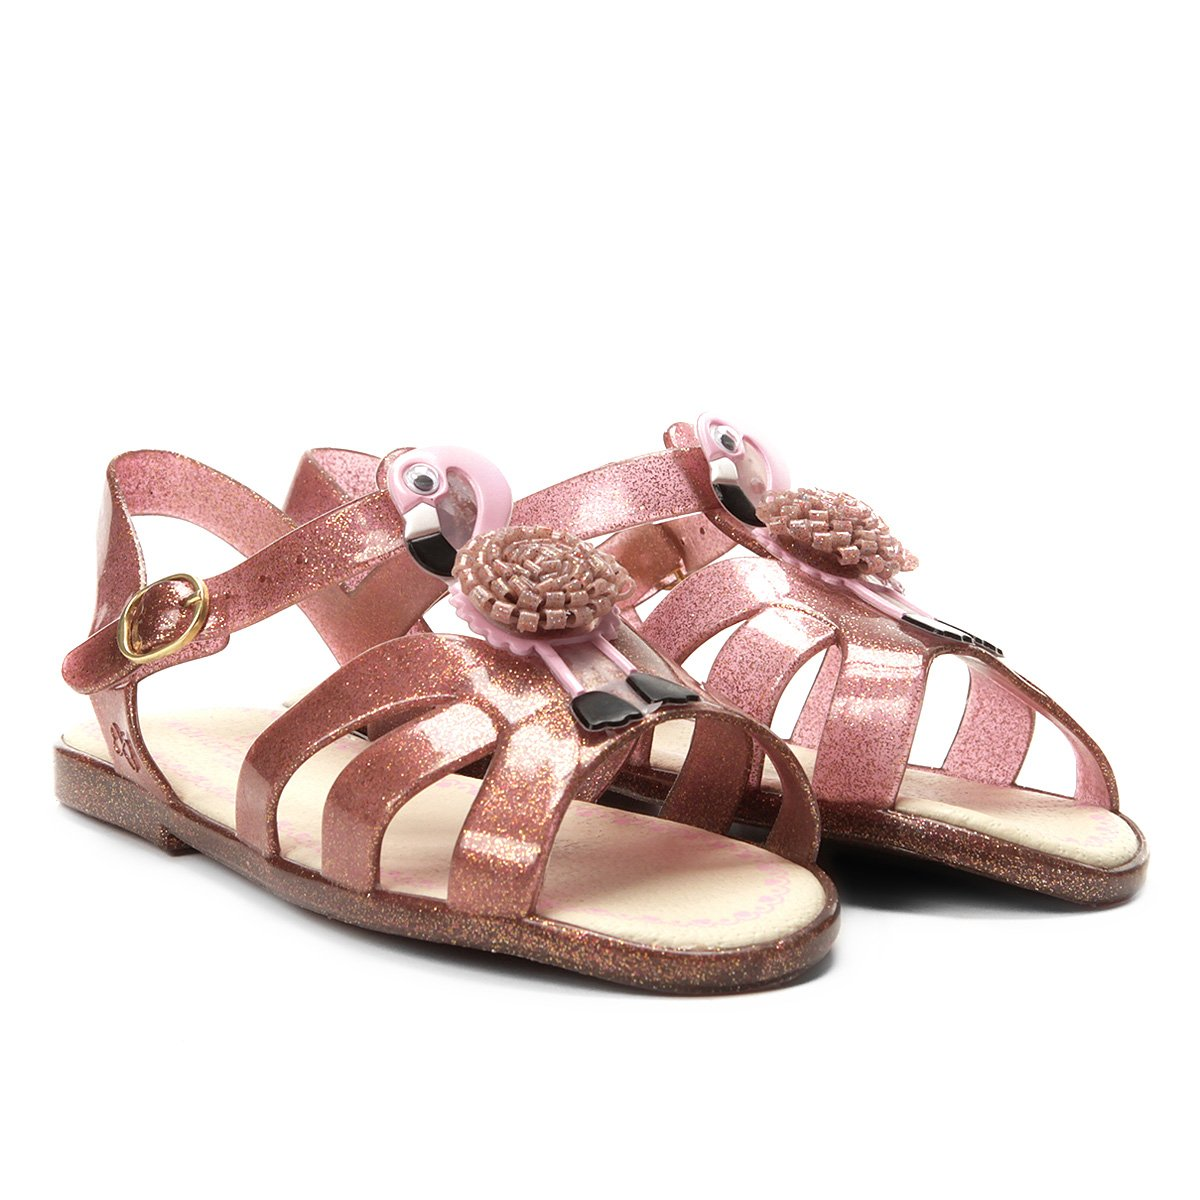 8d5a49097c Sandália Infantil World Colors Verniz Aplique Flamingo Feminina